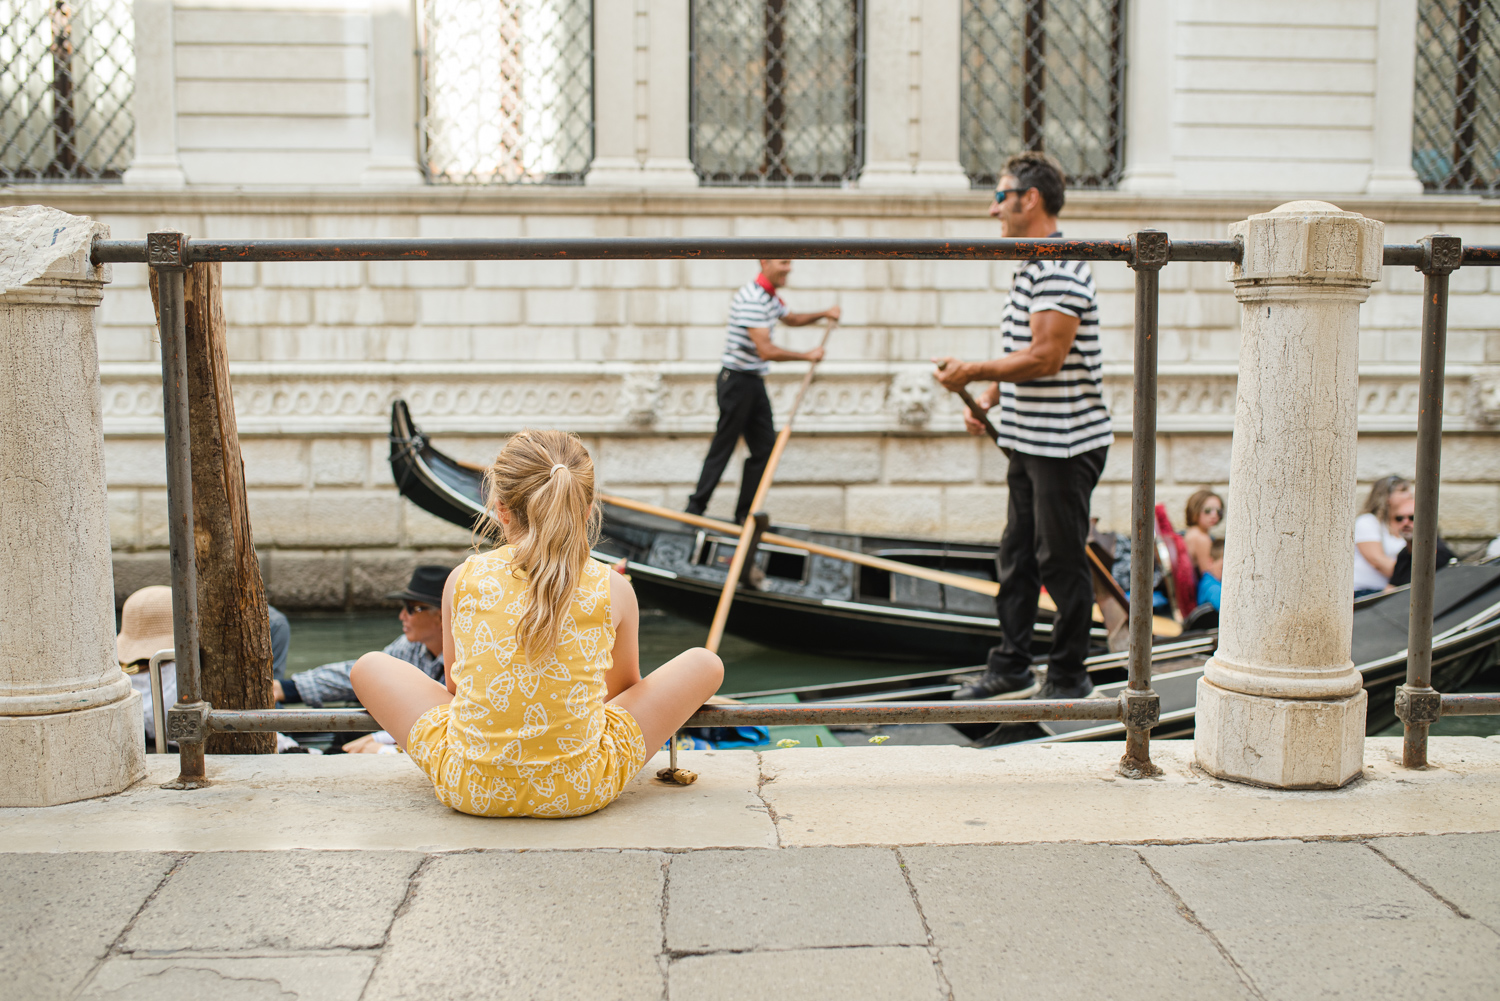 Deep in thought watching tourists and gondoliers